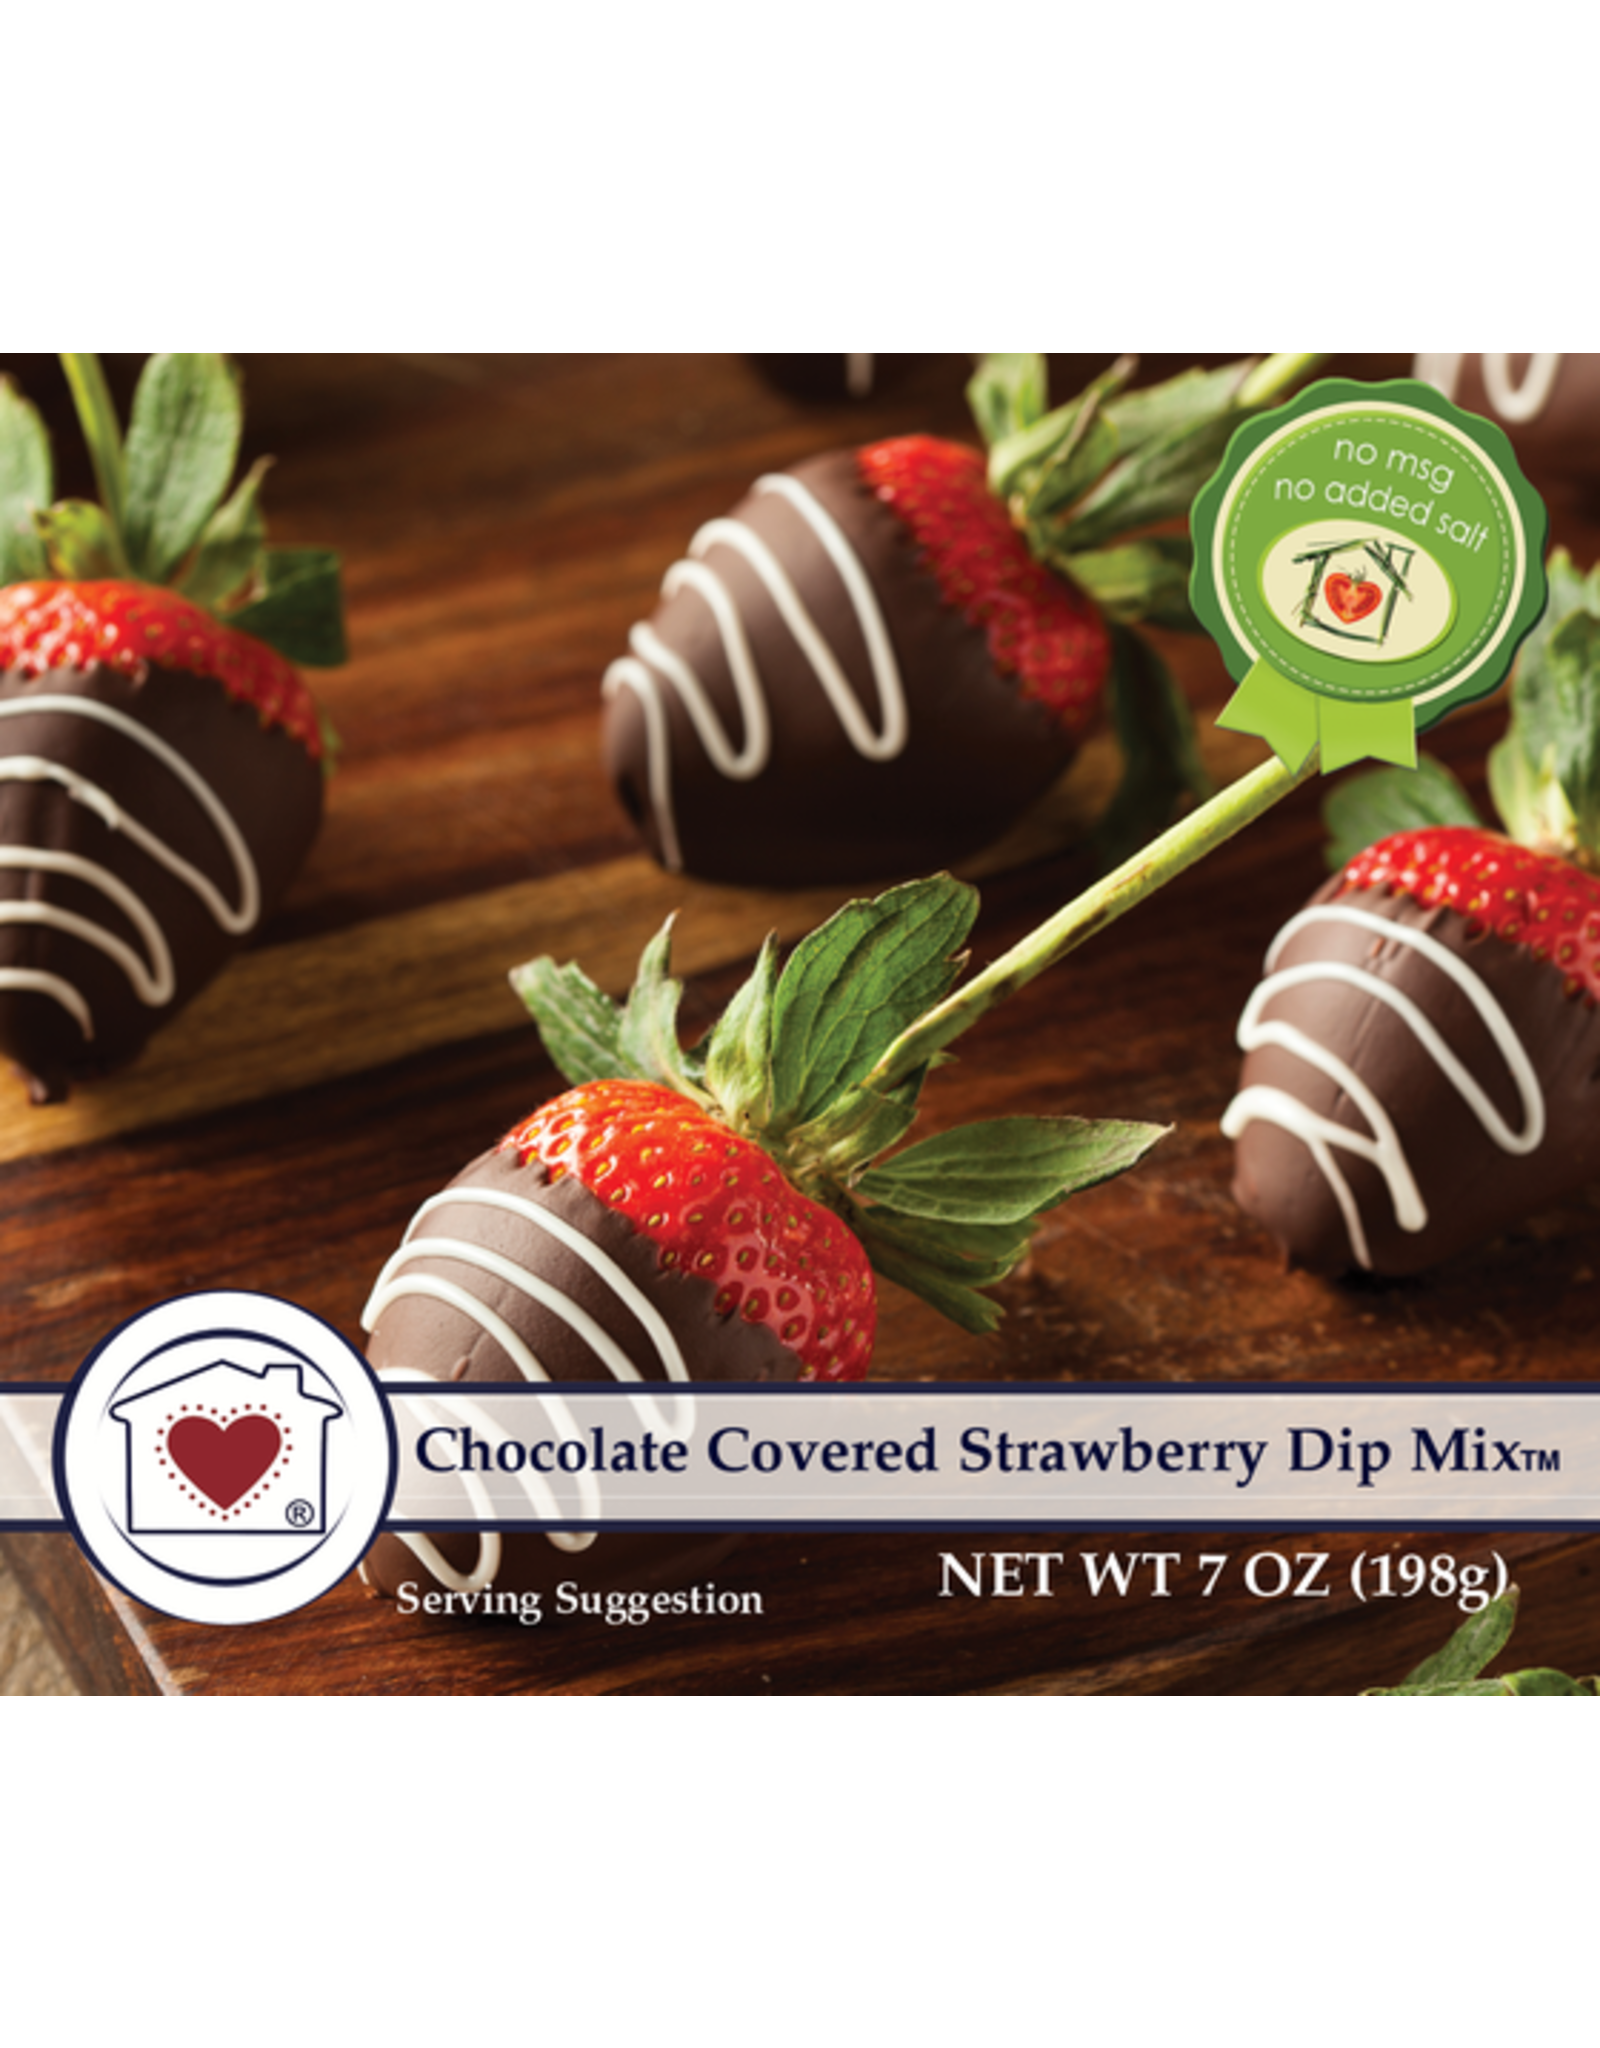 Country Home Creations CHOCOLATE COVERED STRAWBERRY DIP MIX